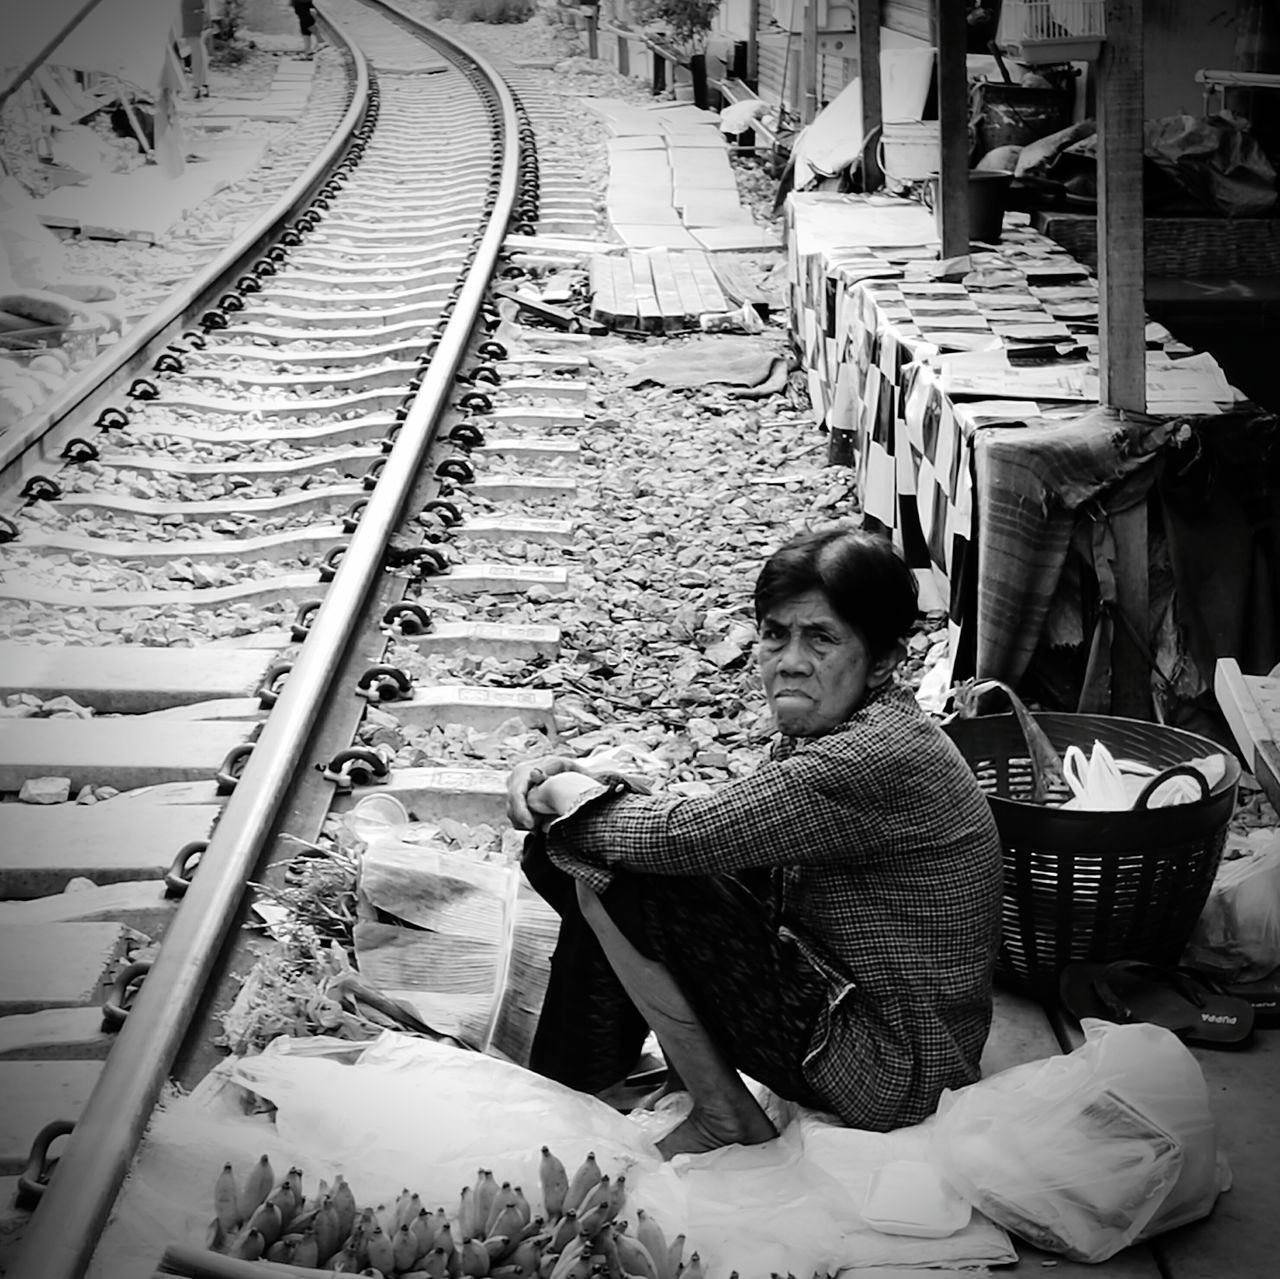 Livelihood Real People Oldlady Bangkok Thailand Bangkok Streetphotography Street Streetphotography Street Photography Streetphotographer Black & White Photography Blackandwhite Black And White Blackandwhite Photography Black And White Photography Blackandwhitephotography EyeEm Best Shots - The Streets EyeEm Best Shots - Black + White EyeEm Bnw EyeEm EyeEm Best Shots EyeEmBestPics EyeEm Gallery Eyeemphotography